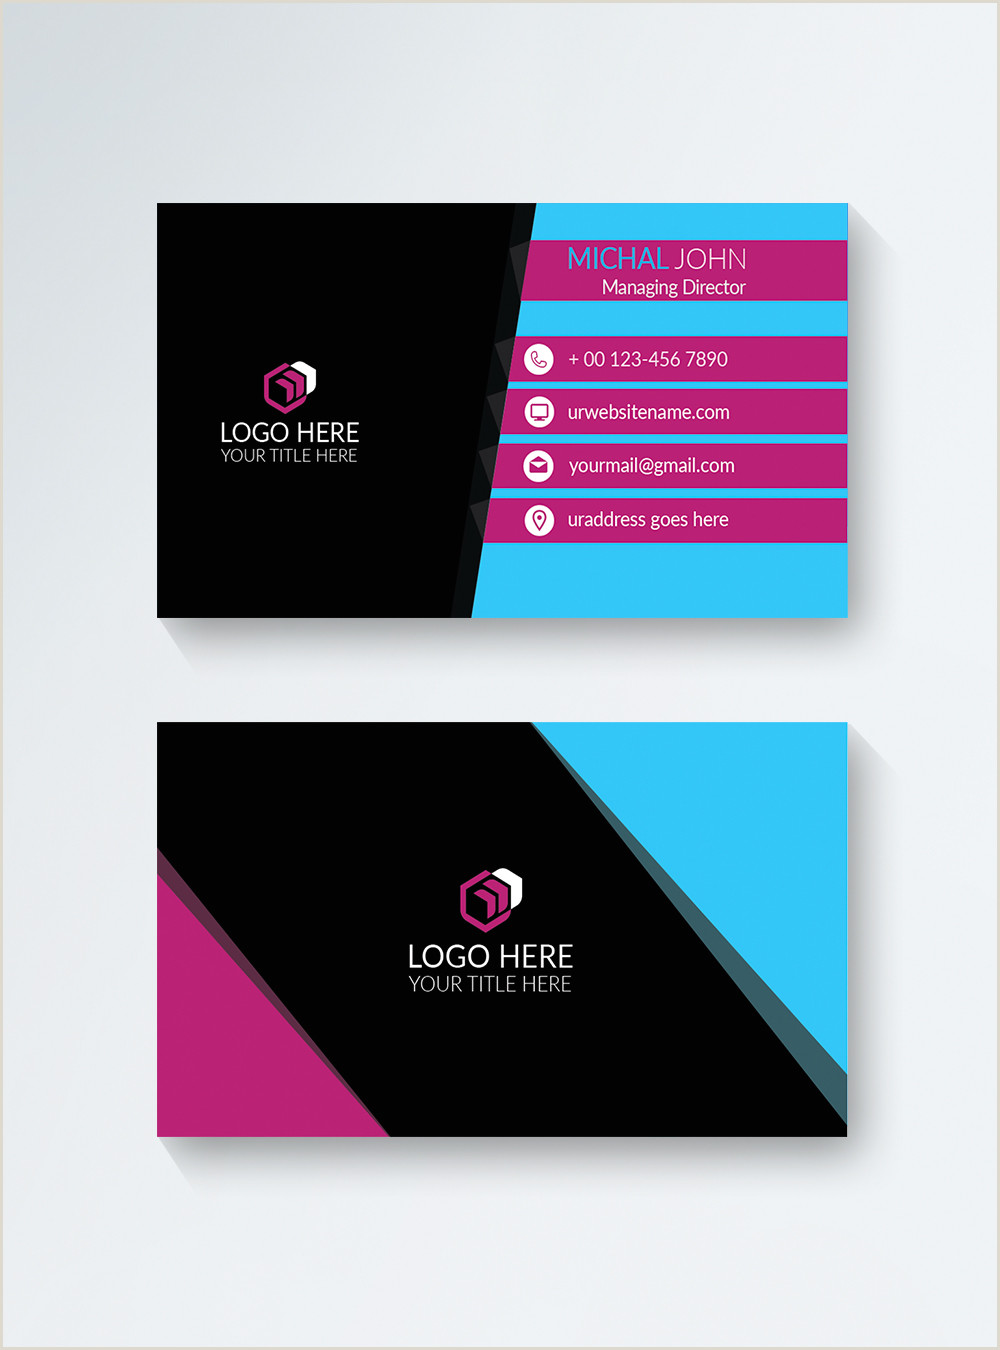 Business Card Color Schemes Color Business Card Template Image Picture Free